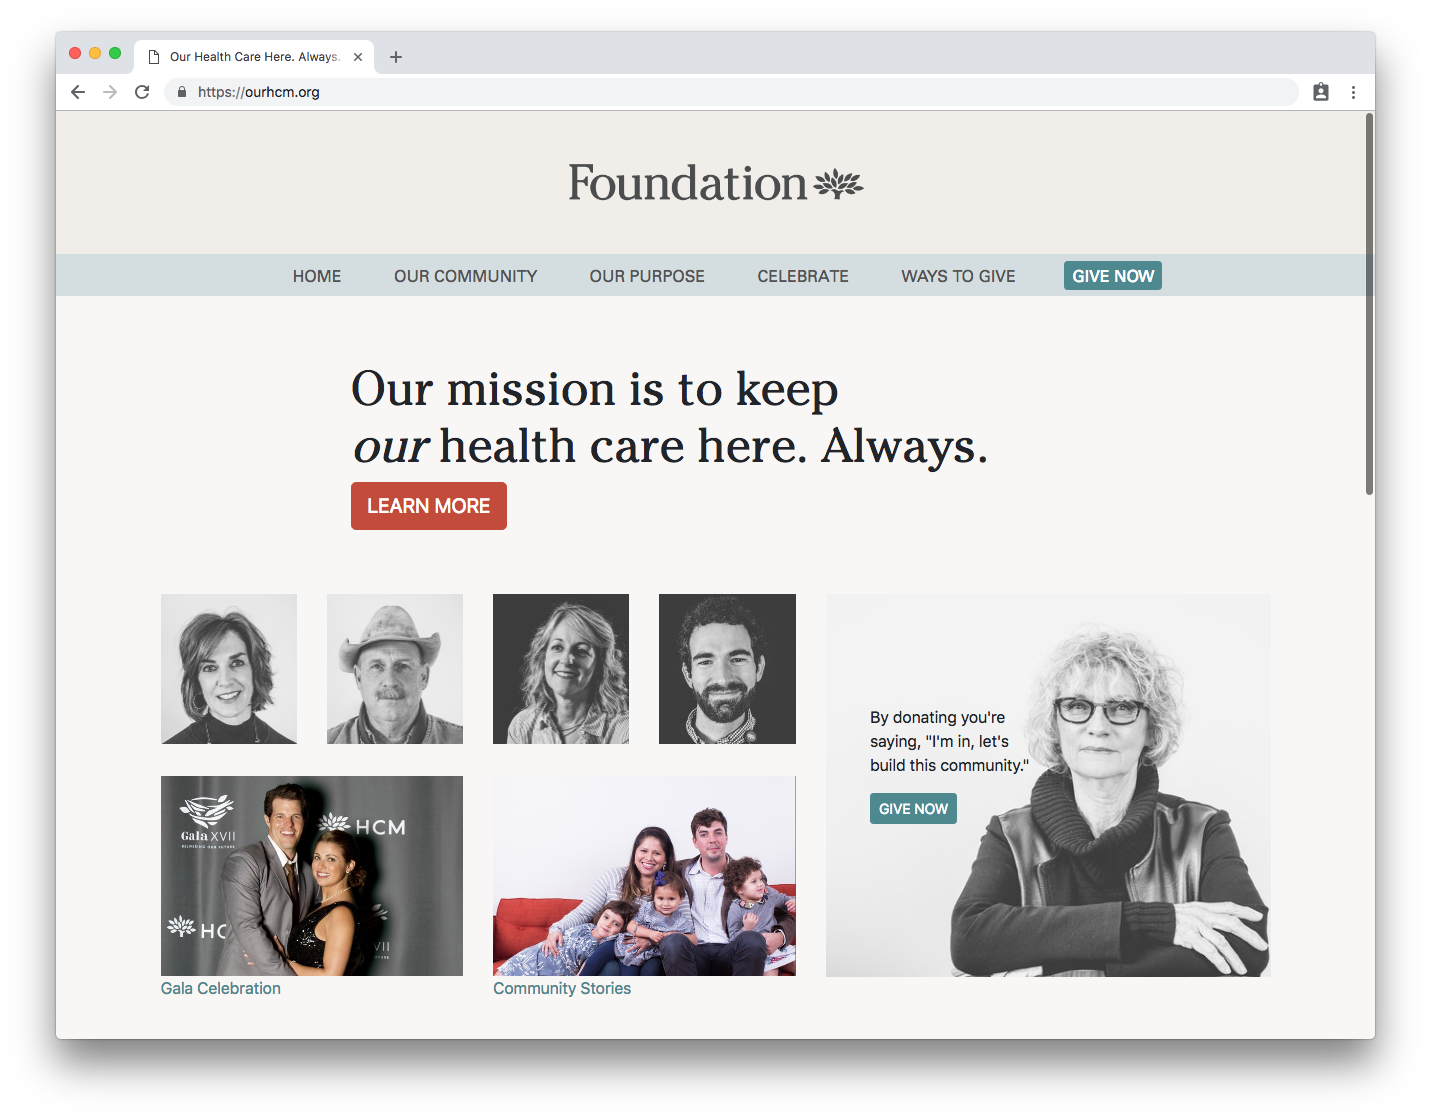 foundation-home-browser.png